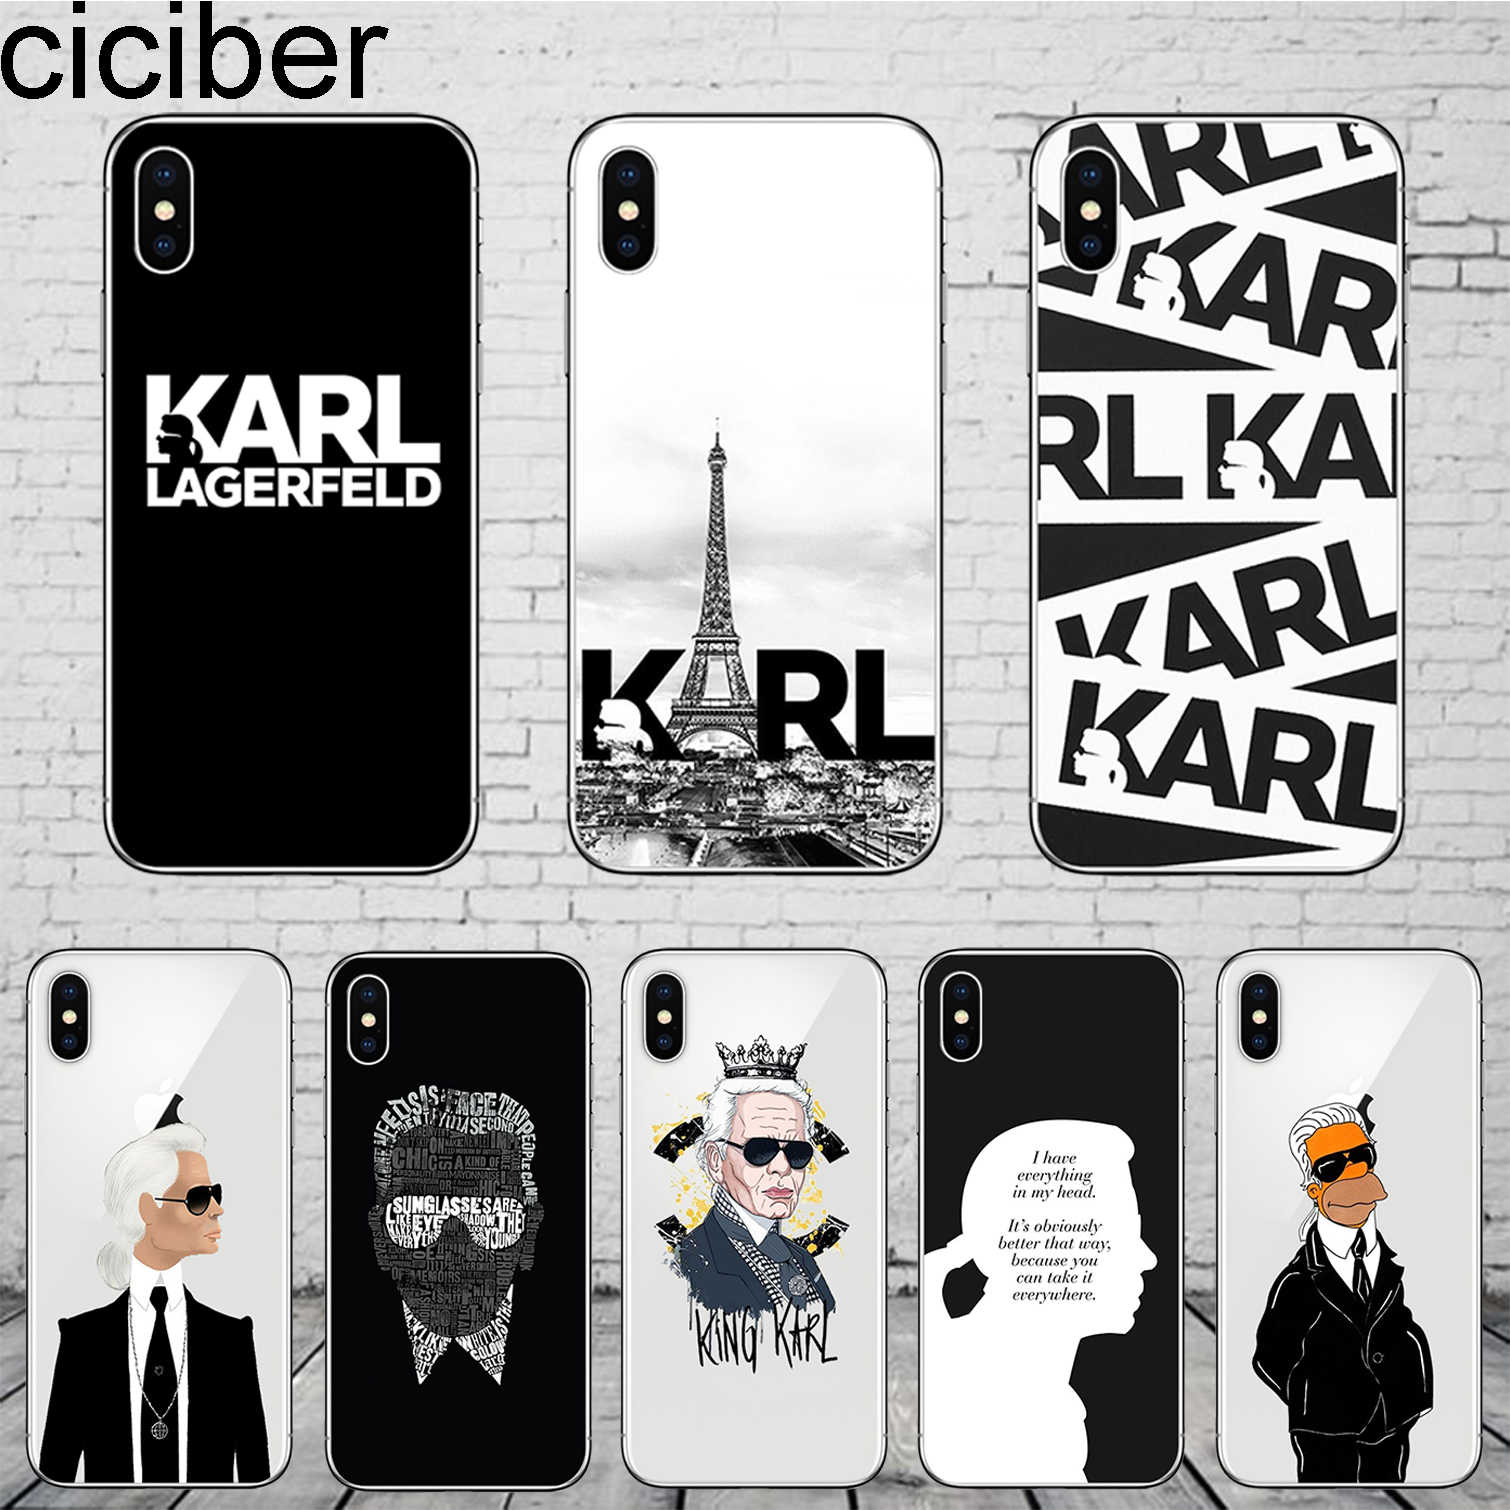 ciciber Karl Lagerfeld for iPhone 11 Pro Max Phone Cases For iPhone 7 8 6 6S Plus X XS Max XR 5 5S SE Coque Cover Soft Silicone